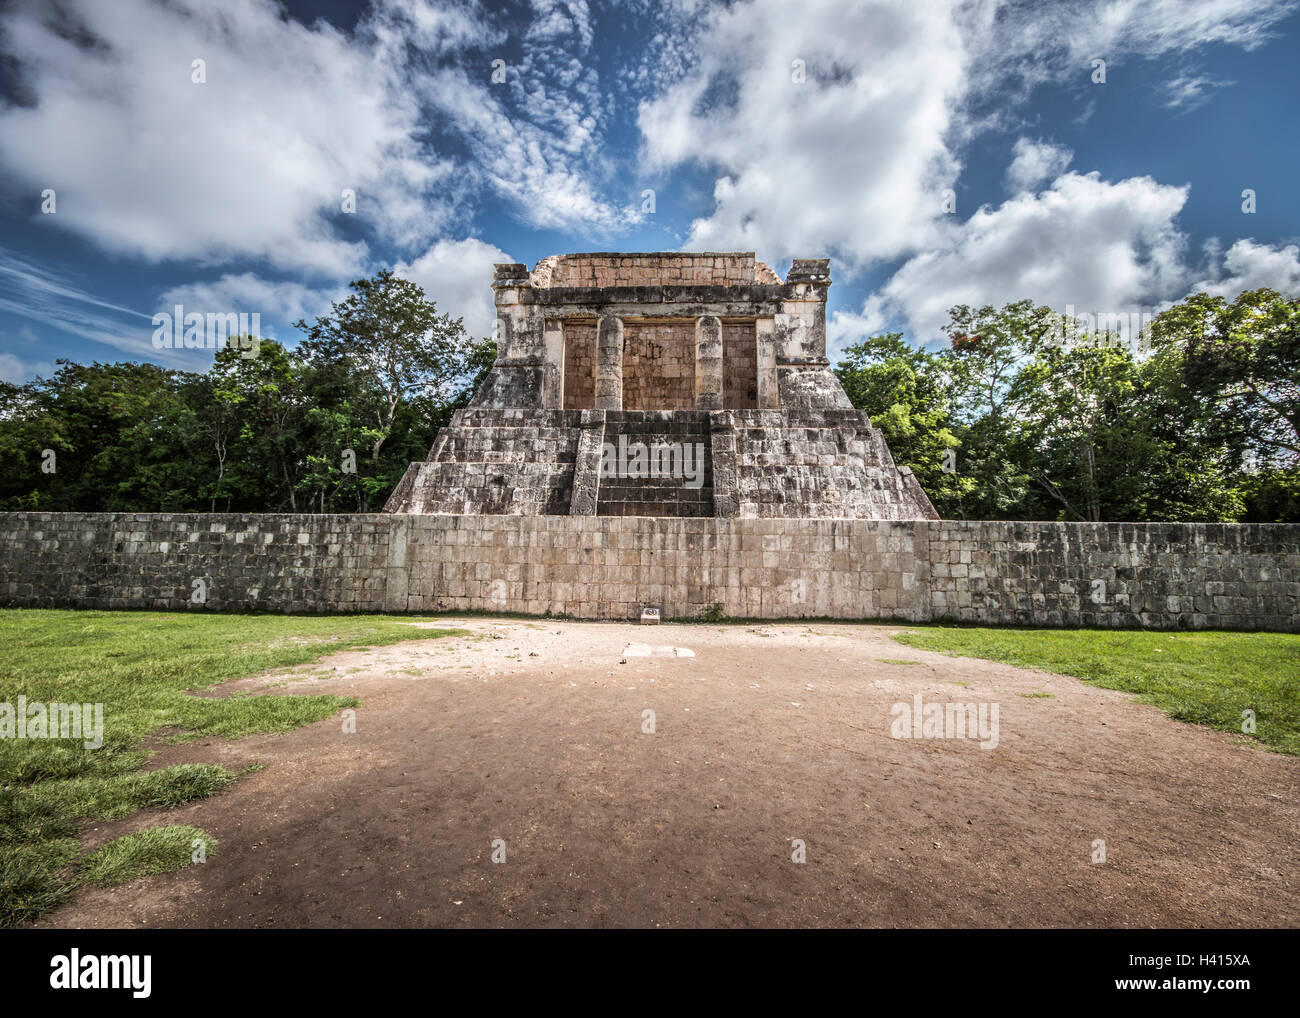 Tribüne des Ball-Spiel in Chichen Itza (Mexiko) Stockfoto